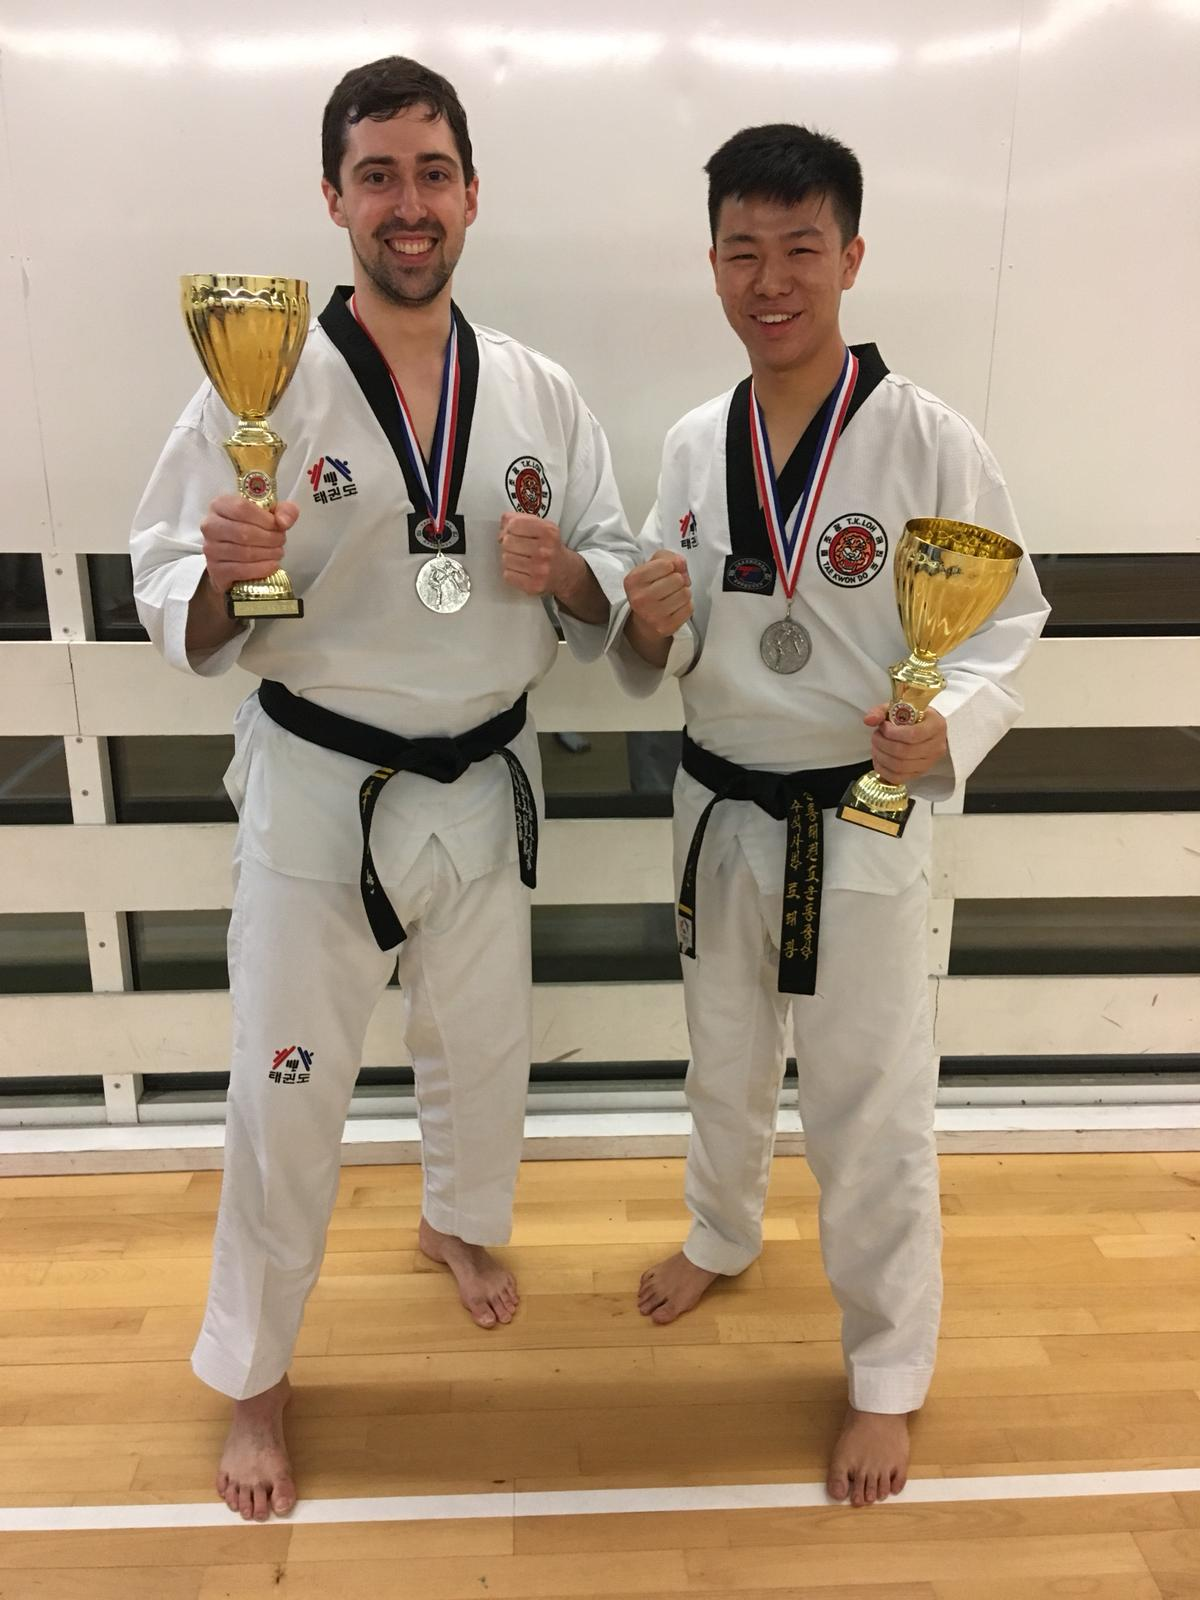 Mr Cornwell and Matthew with their trophies